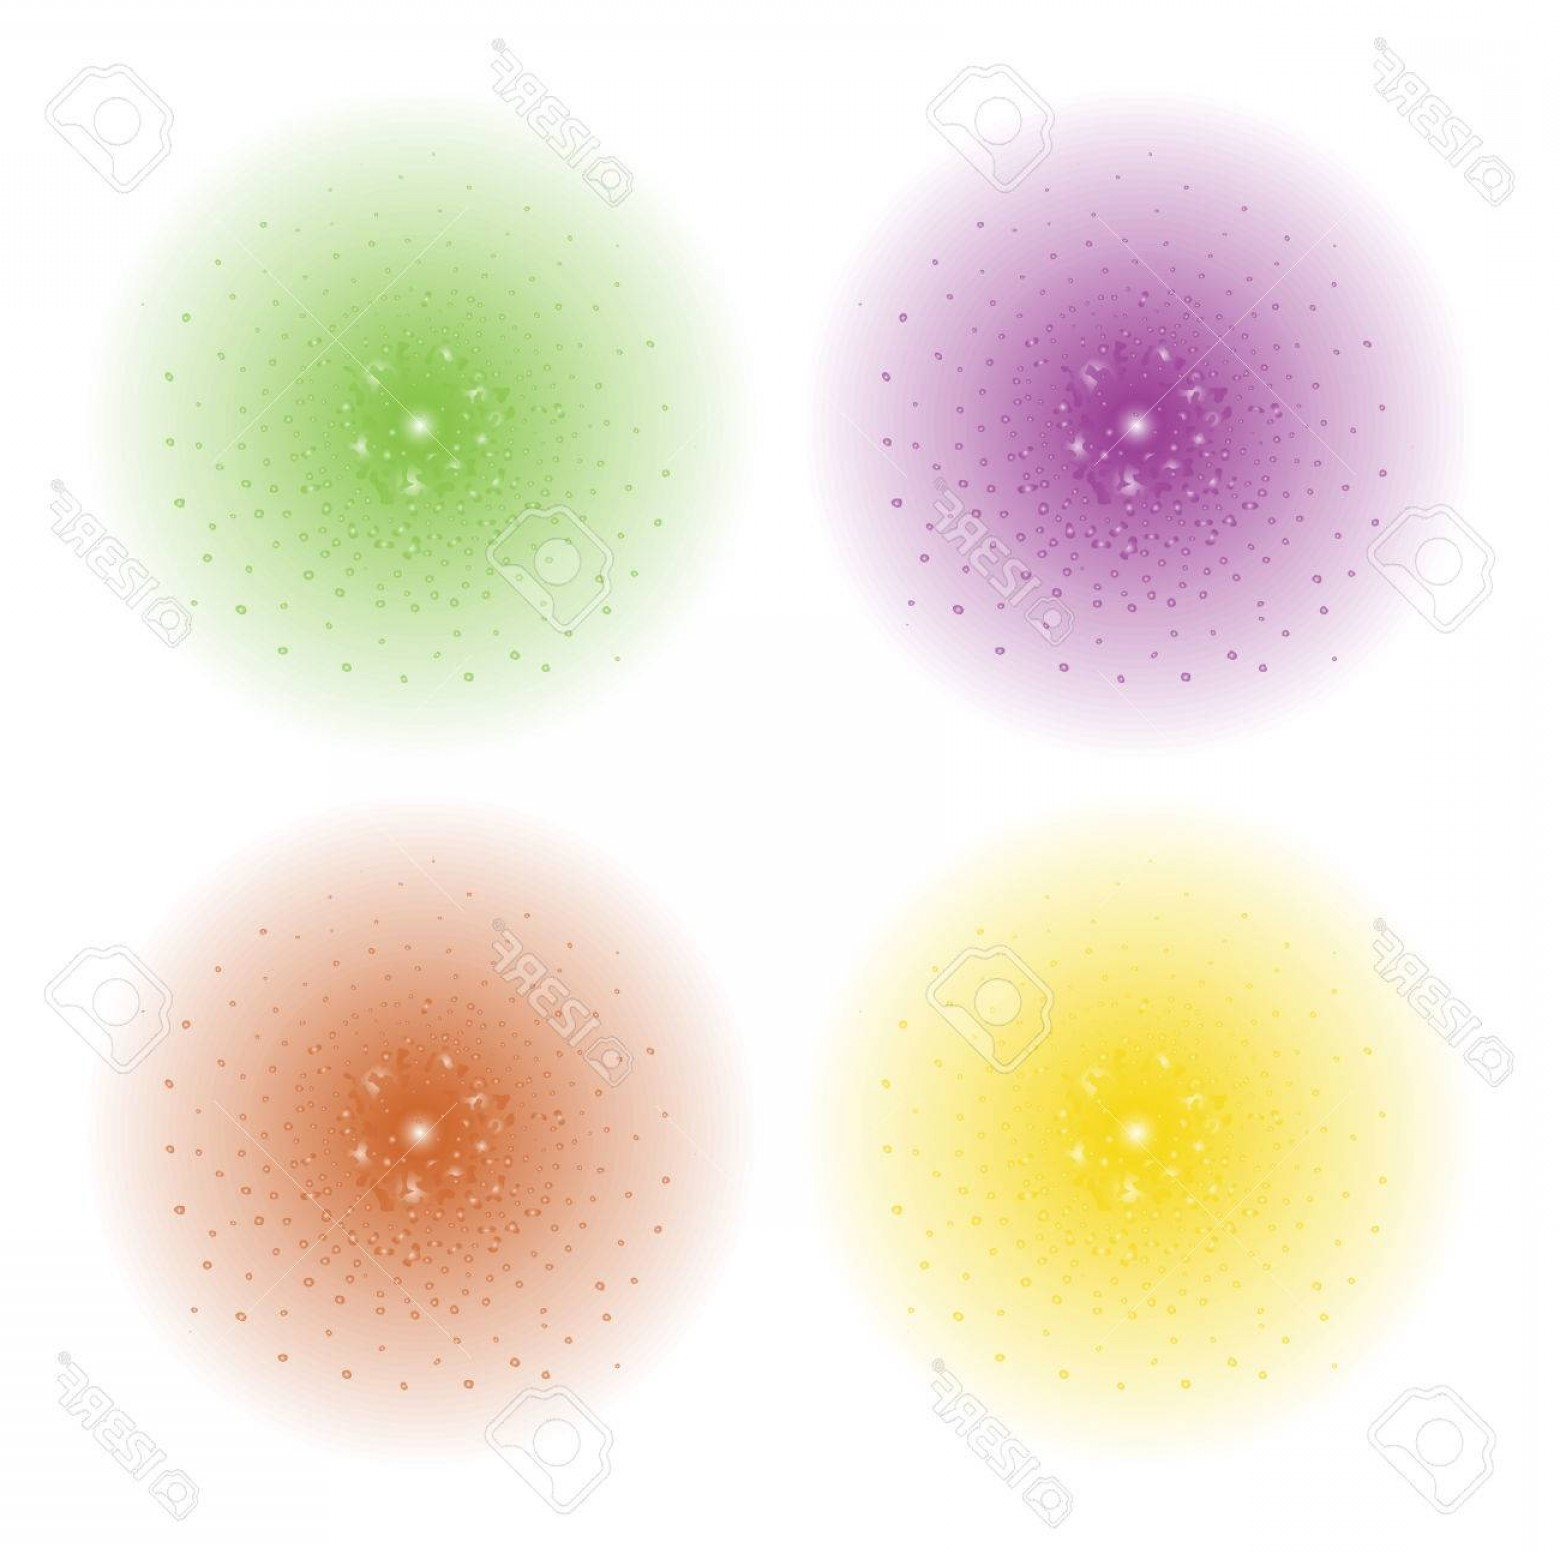 Purple Green And White Vector: Photostock Vector Paint Spray Beam Effect Purple Green Yellow Orange Color Splashes Spheres Vector Clip Art Illustrati